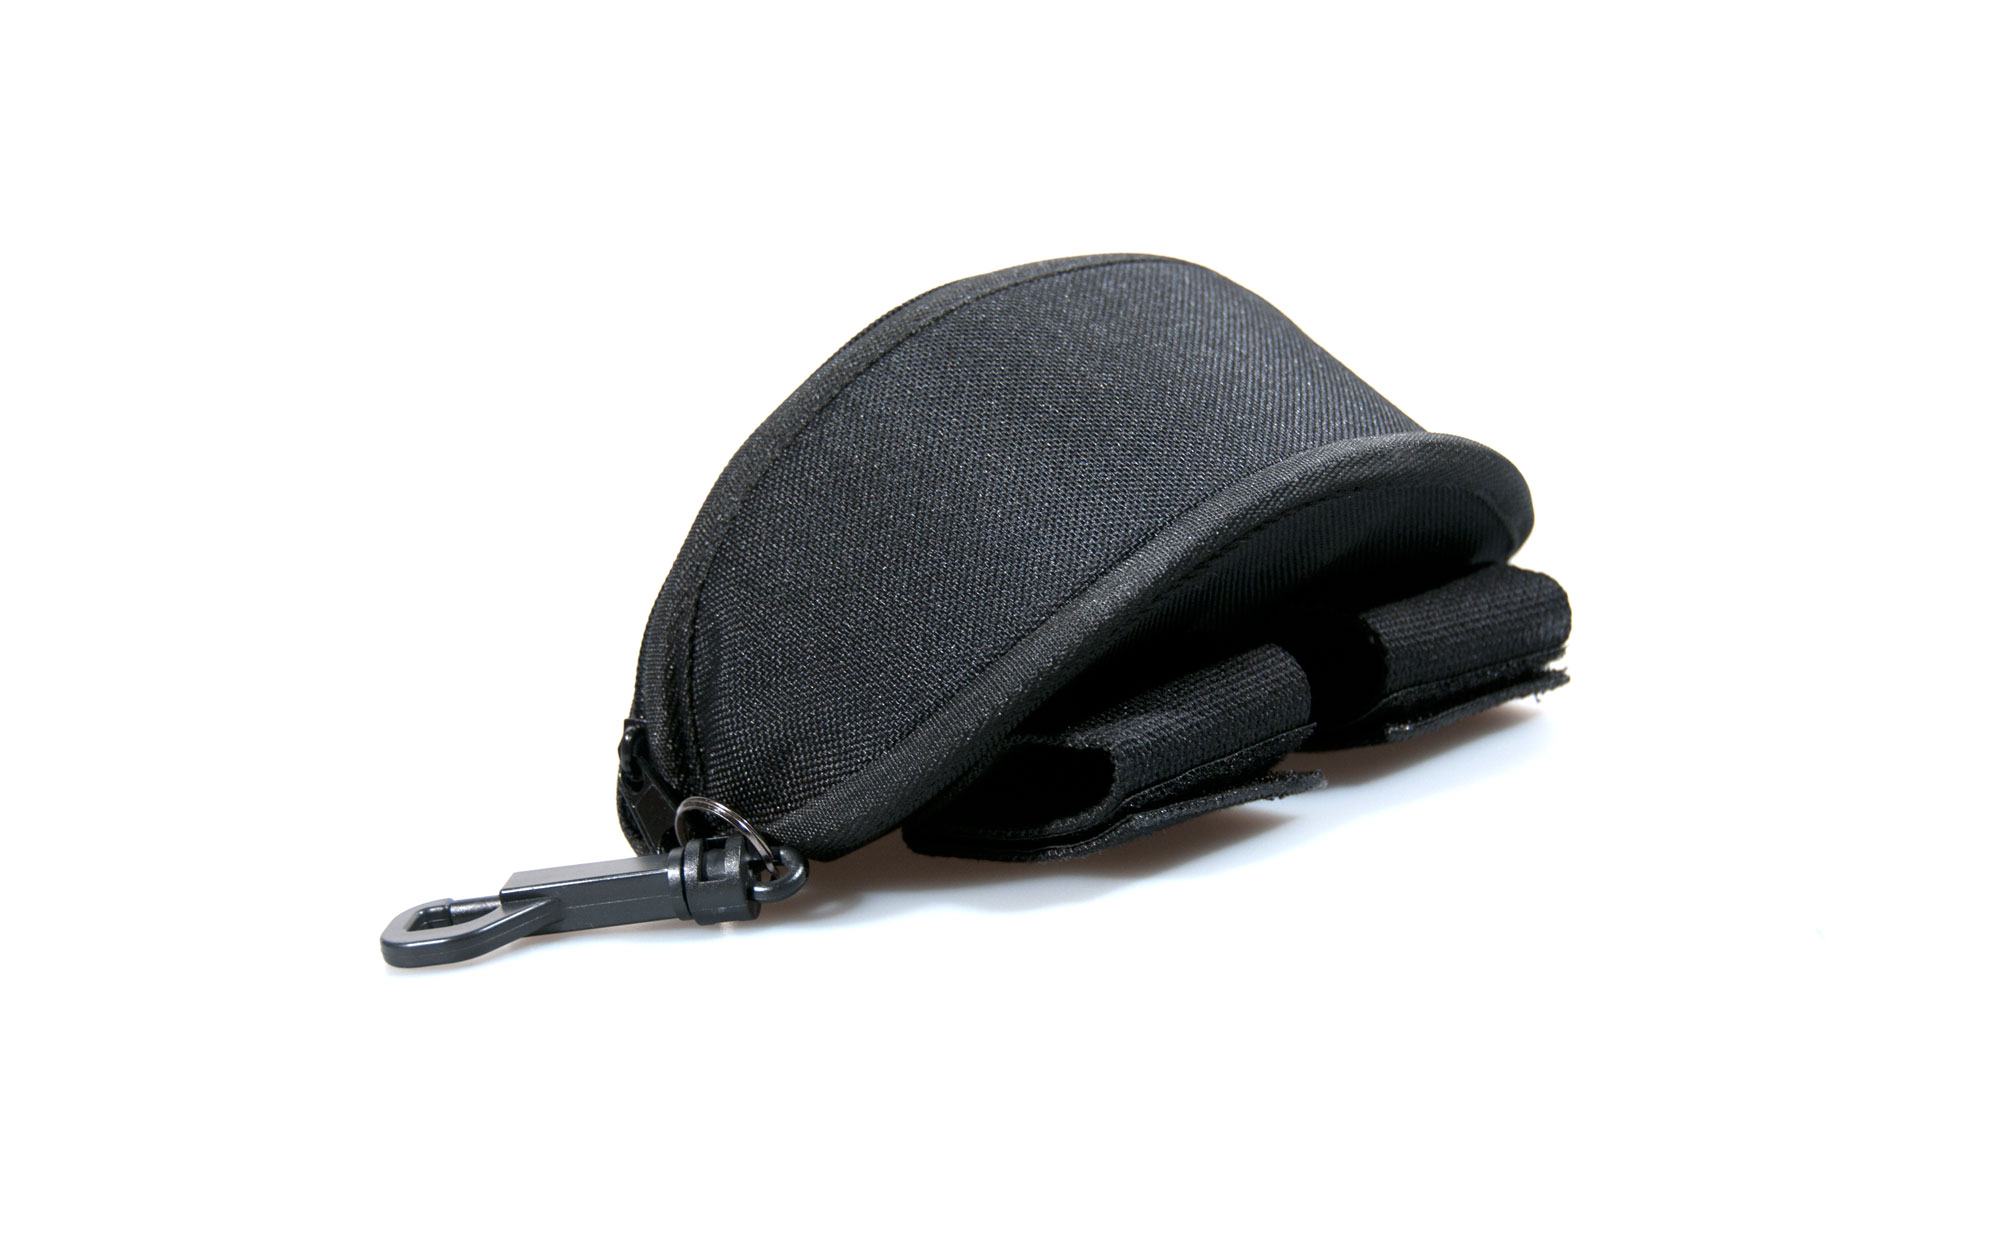 3 Lens Zipper Case Image